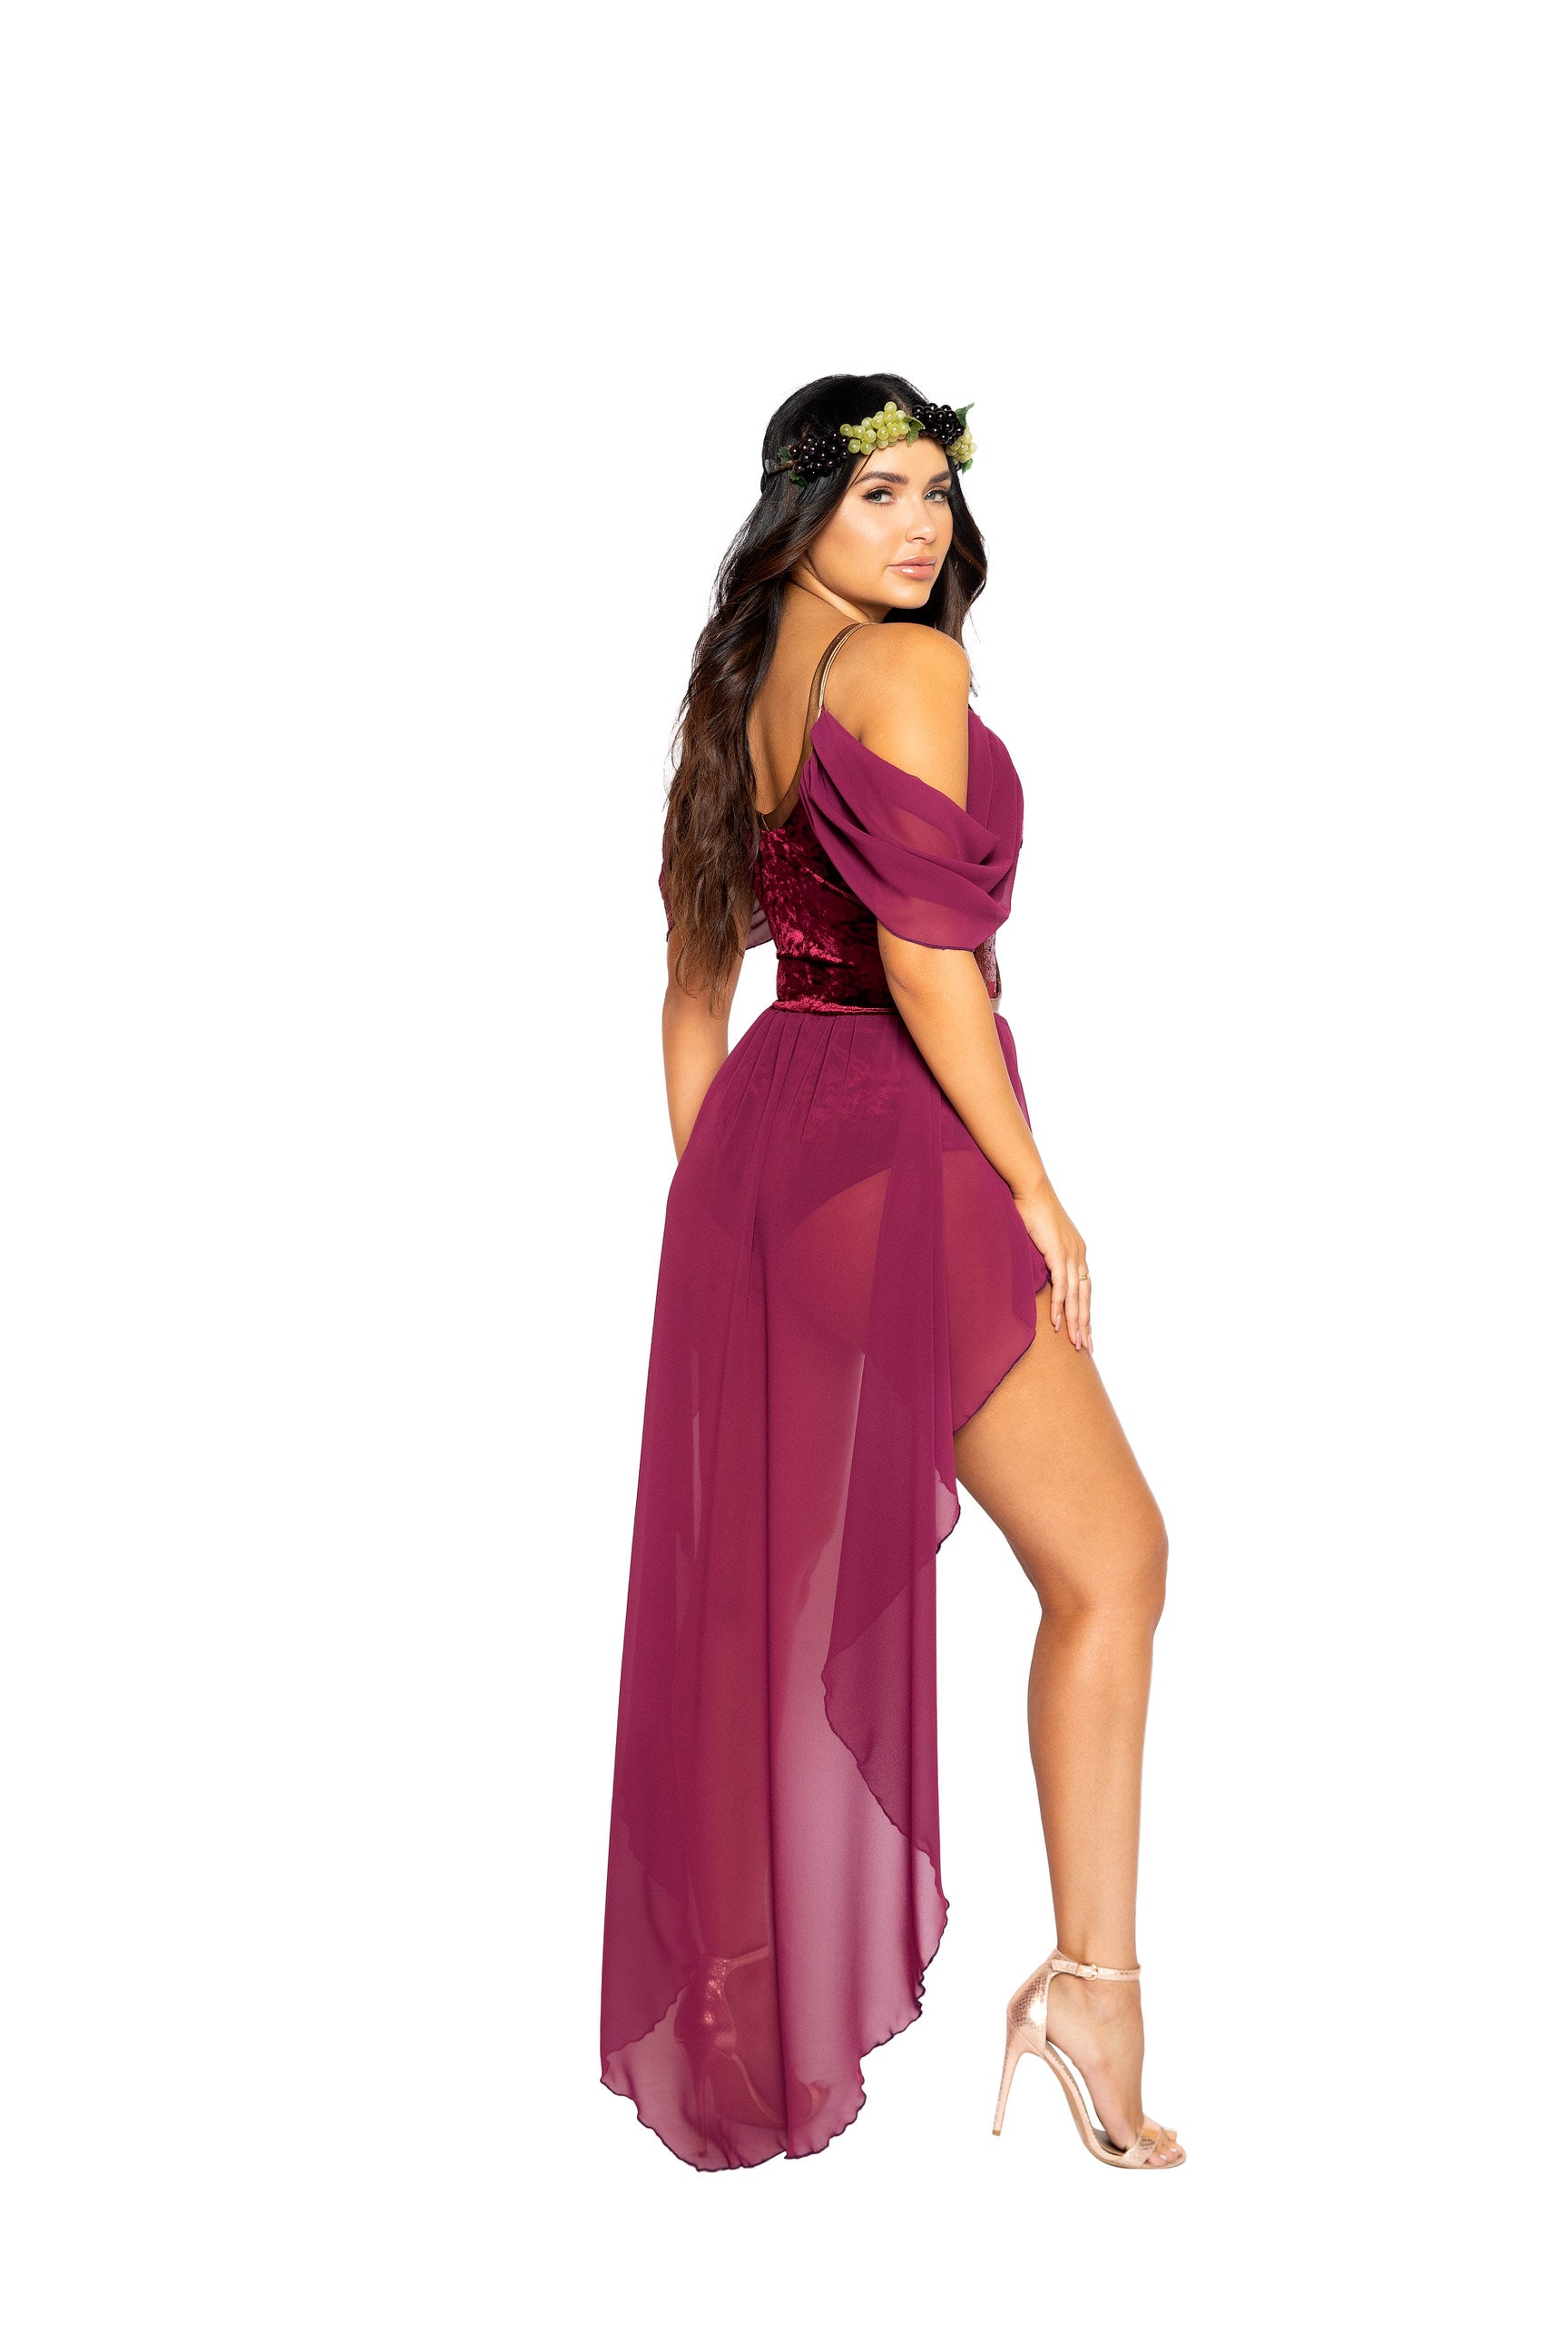 5001 - 2pc Wine Goddess